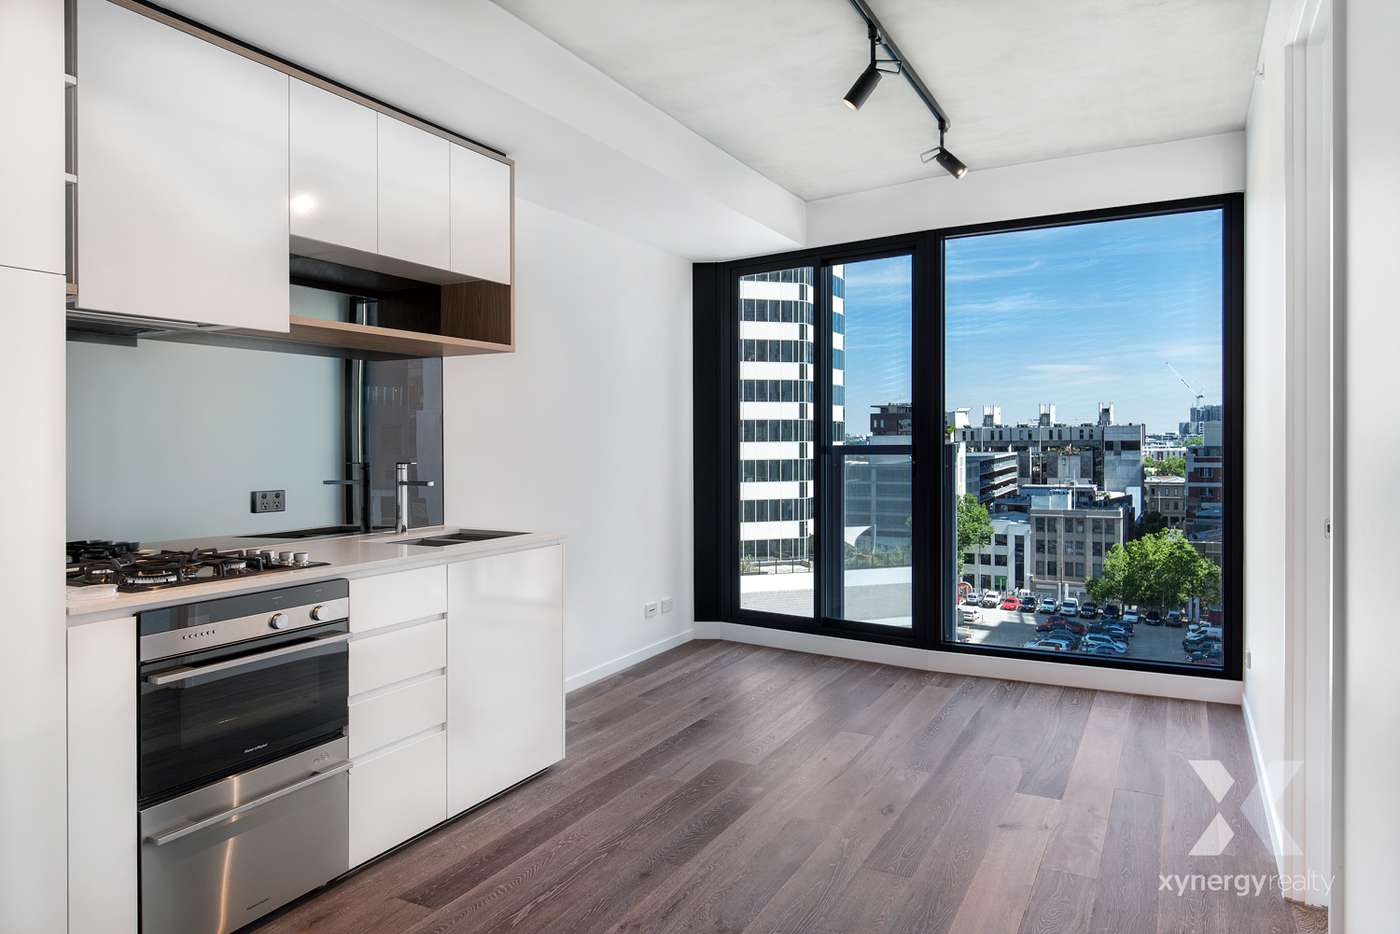 Main view of Homely apartment listing, 302/315 La Trobe Street, Melbourne VIC 3000